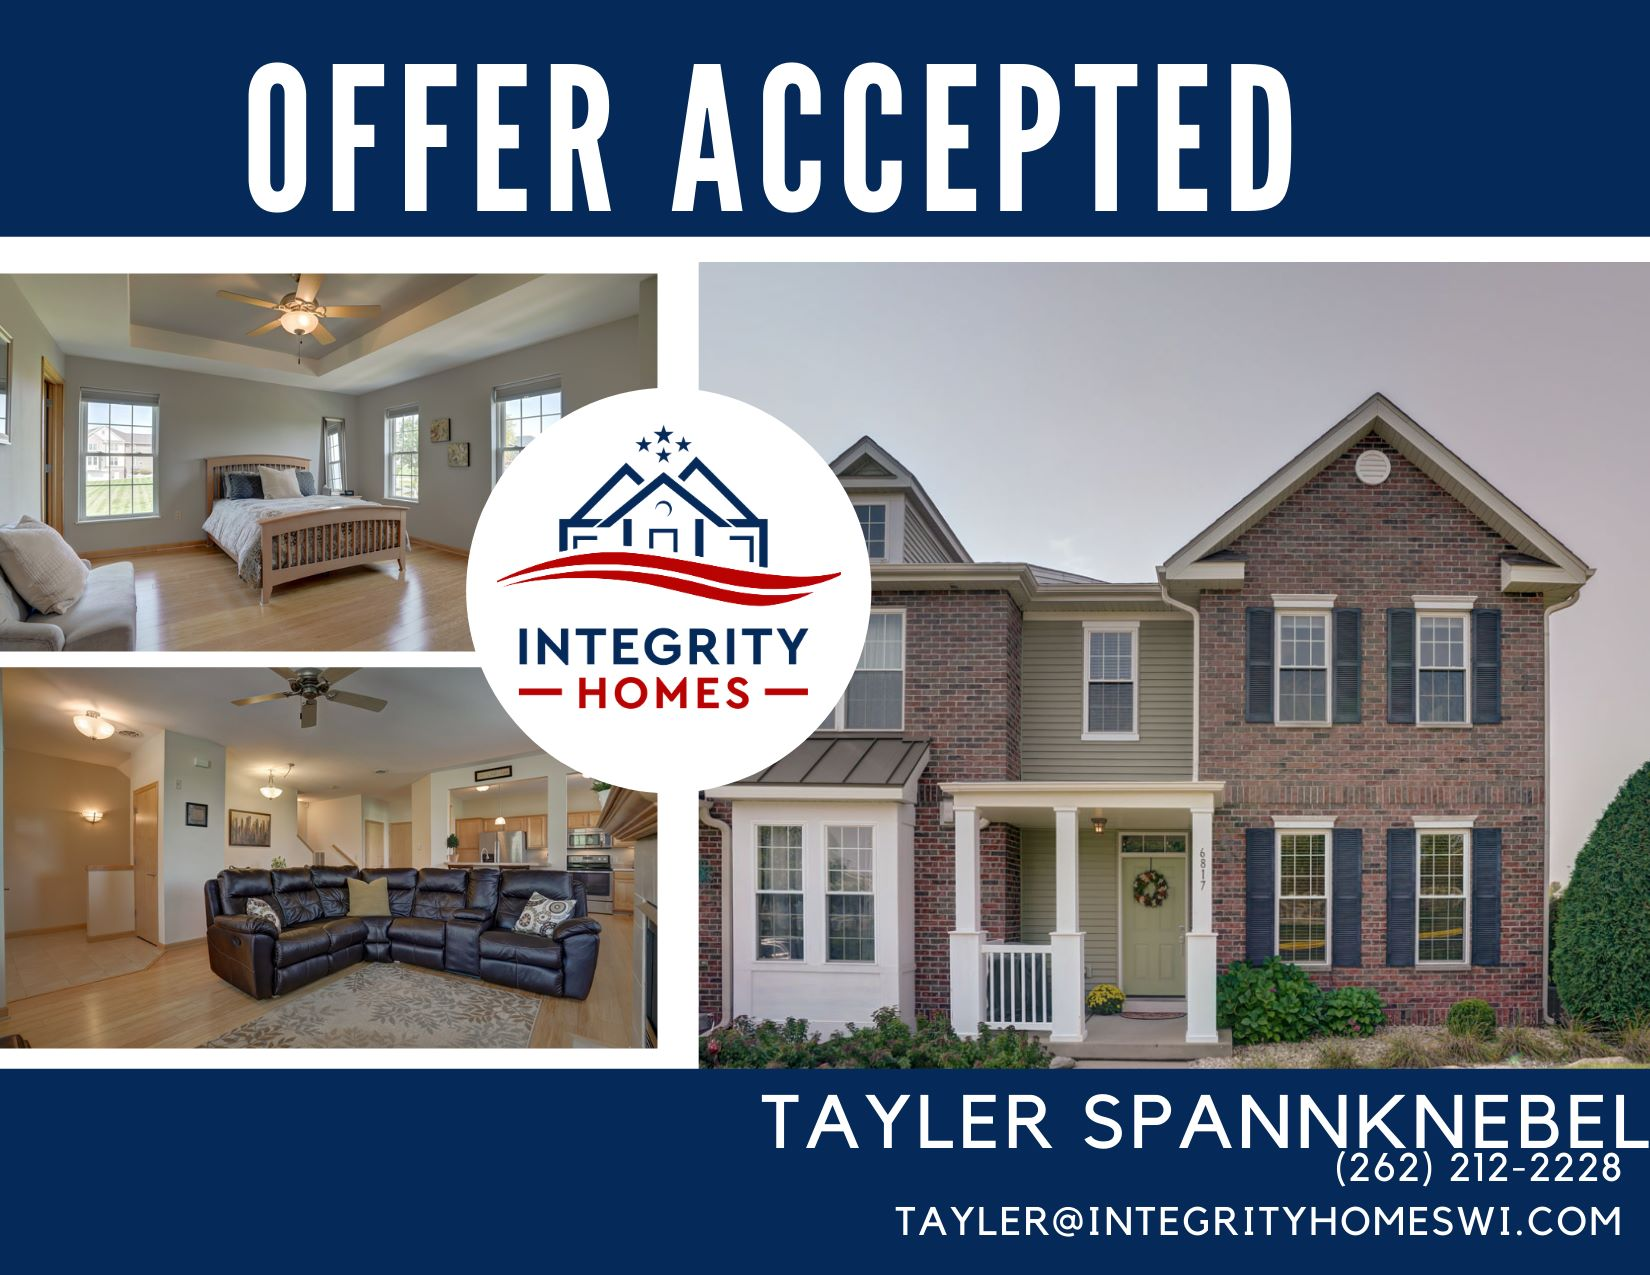 Tayler - Accepted Offer!